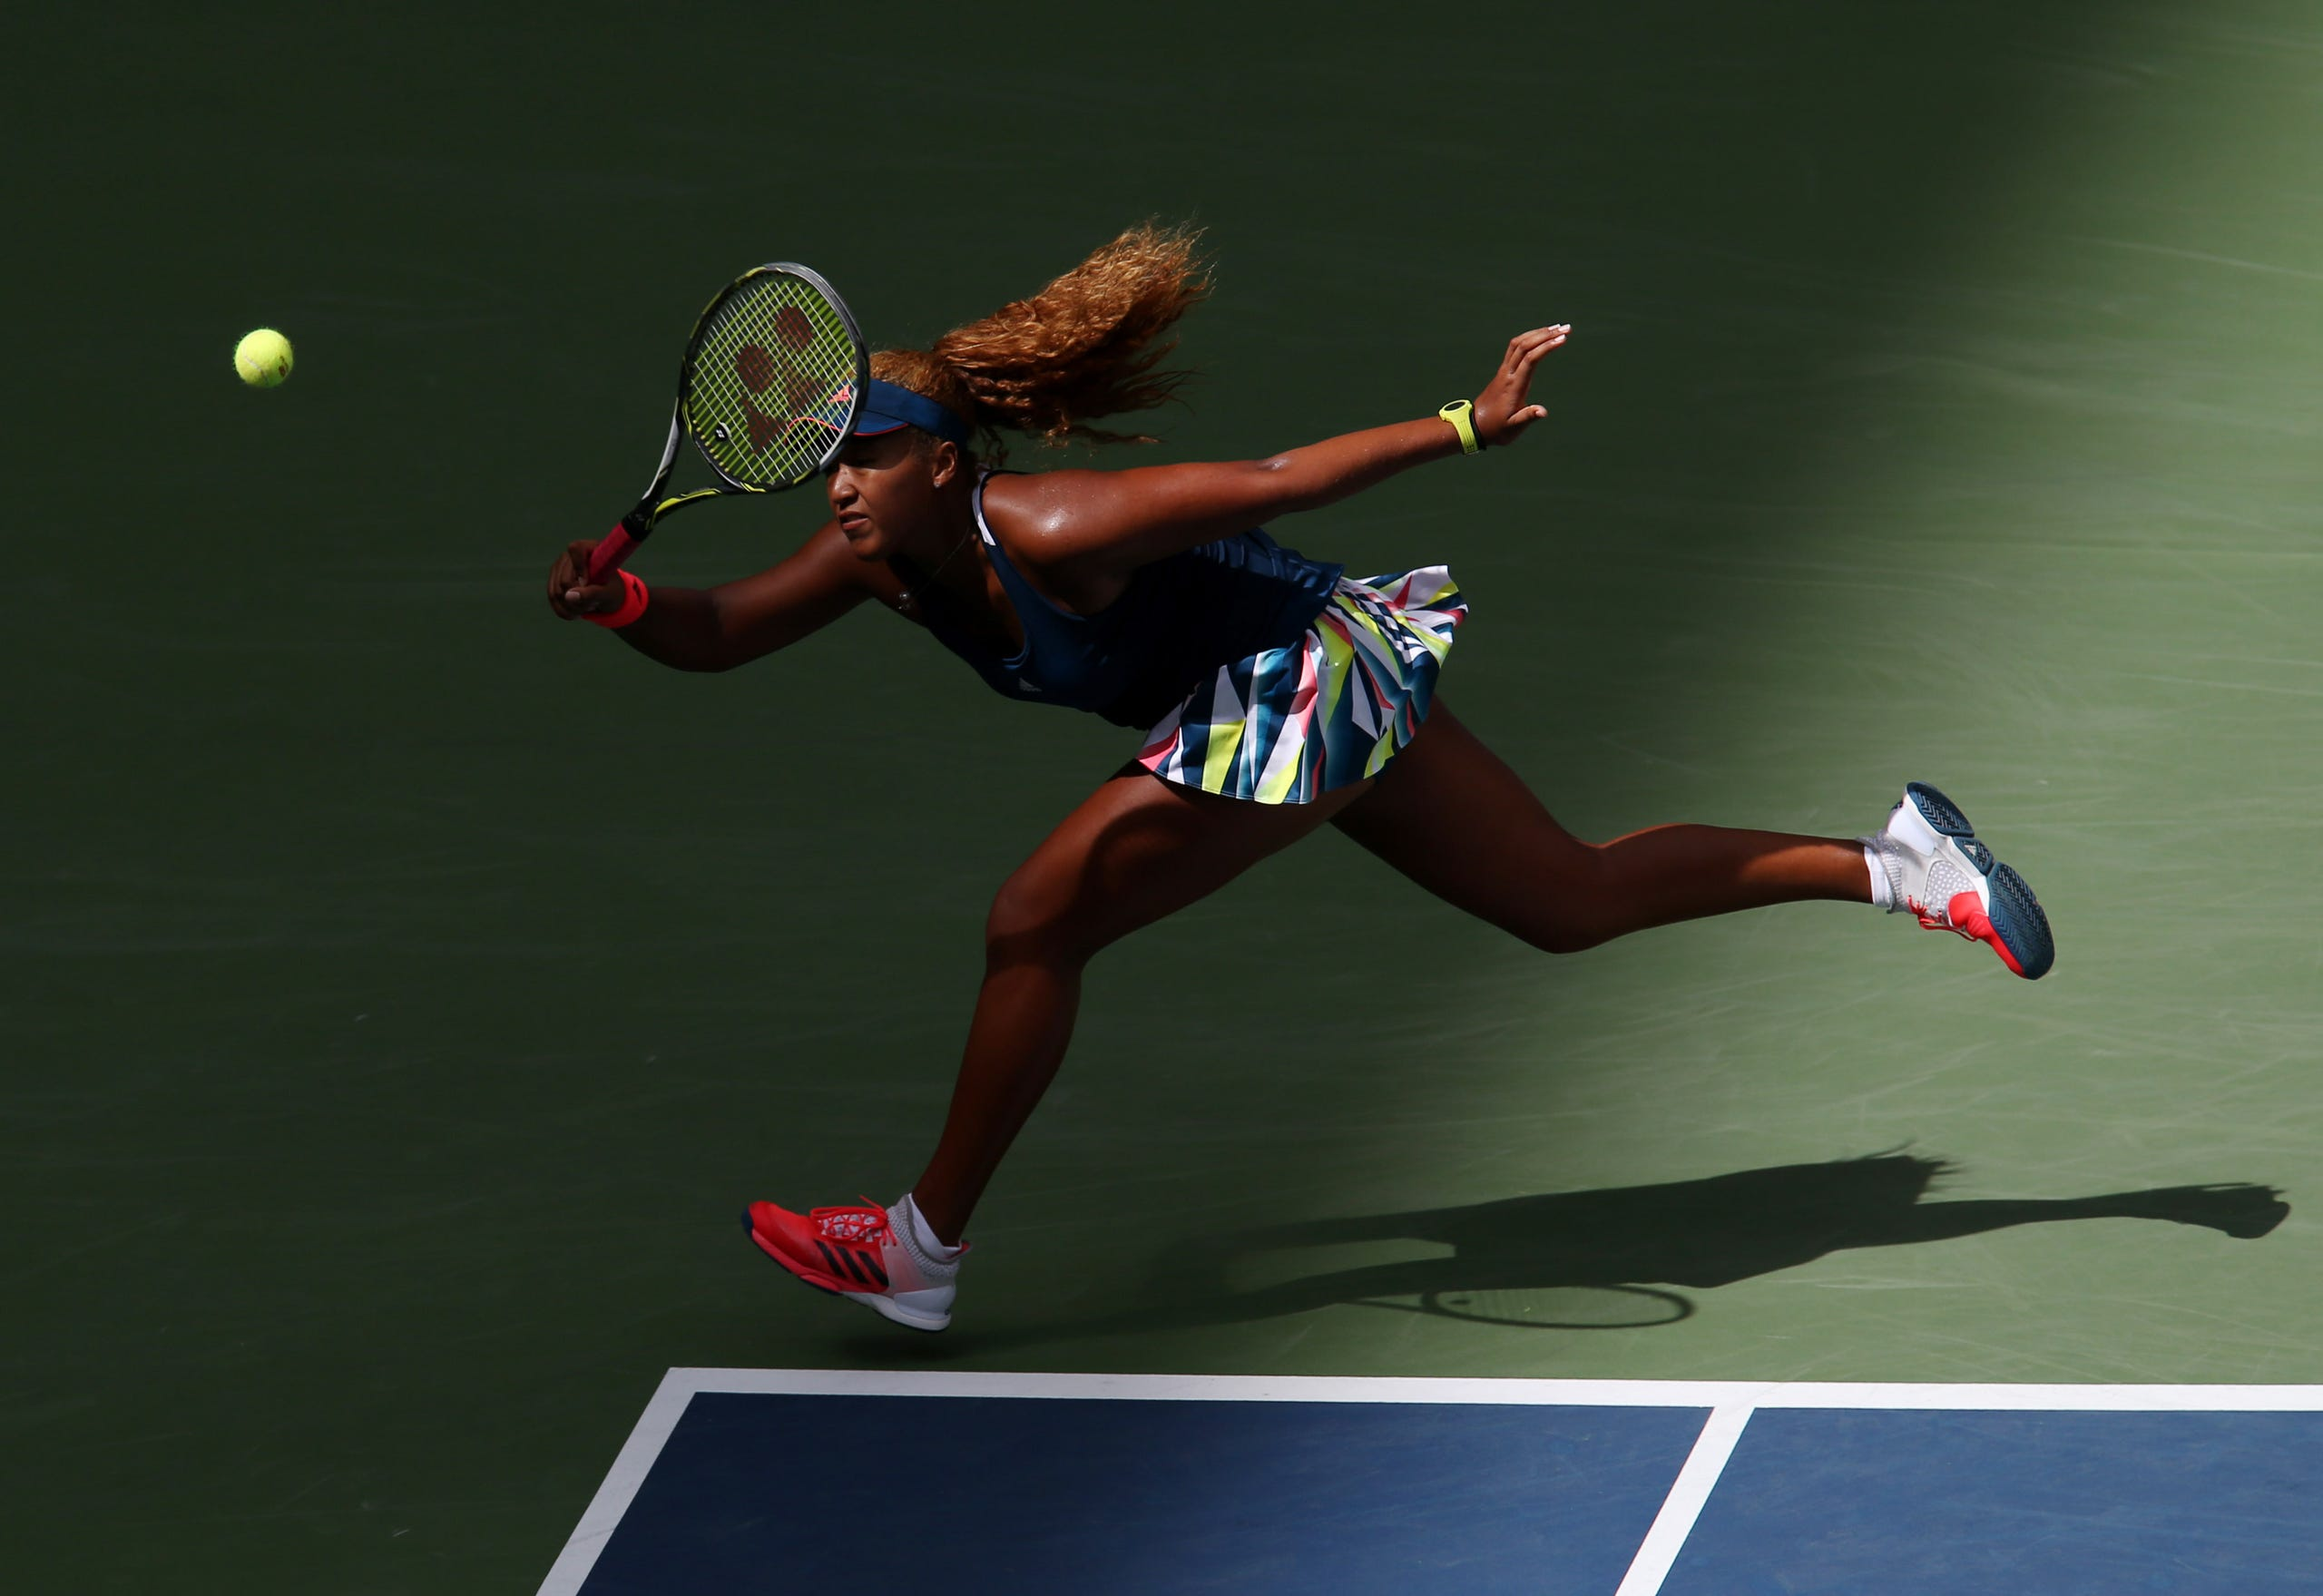 Naomi Osaka of Japan hits a shot to Madison Keys of the United States on day five of the 2016 U.S. Open tennis tournament at USTA Billie Jean King National Tennis Center on Sept. 2, 2016.